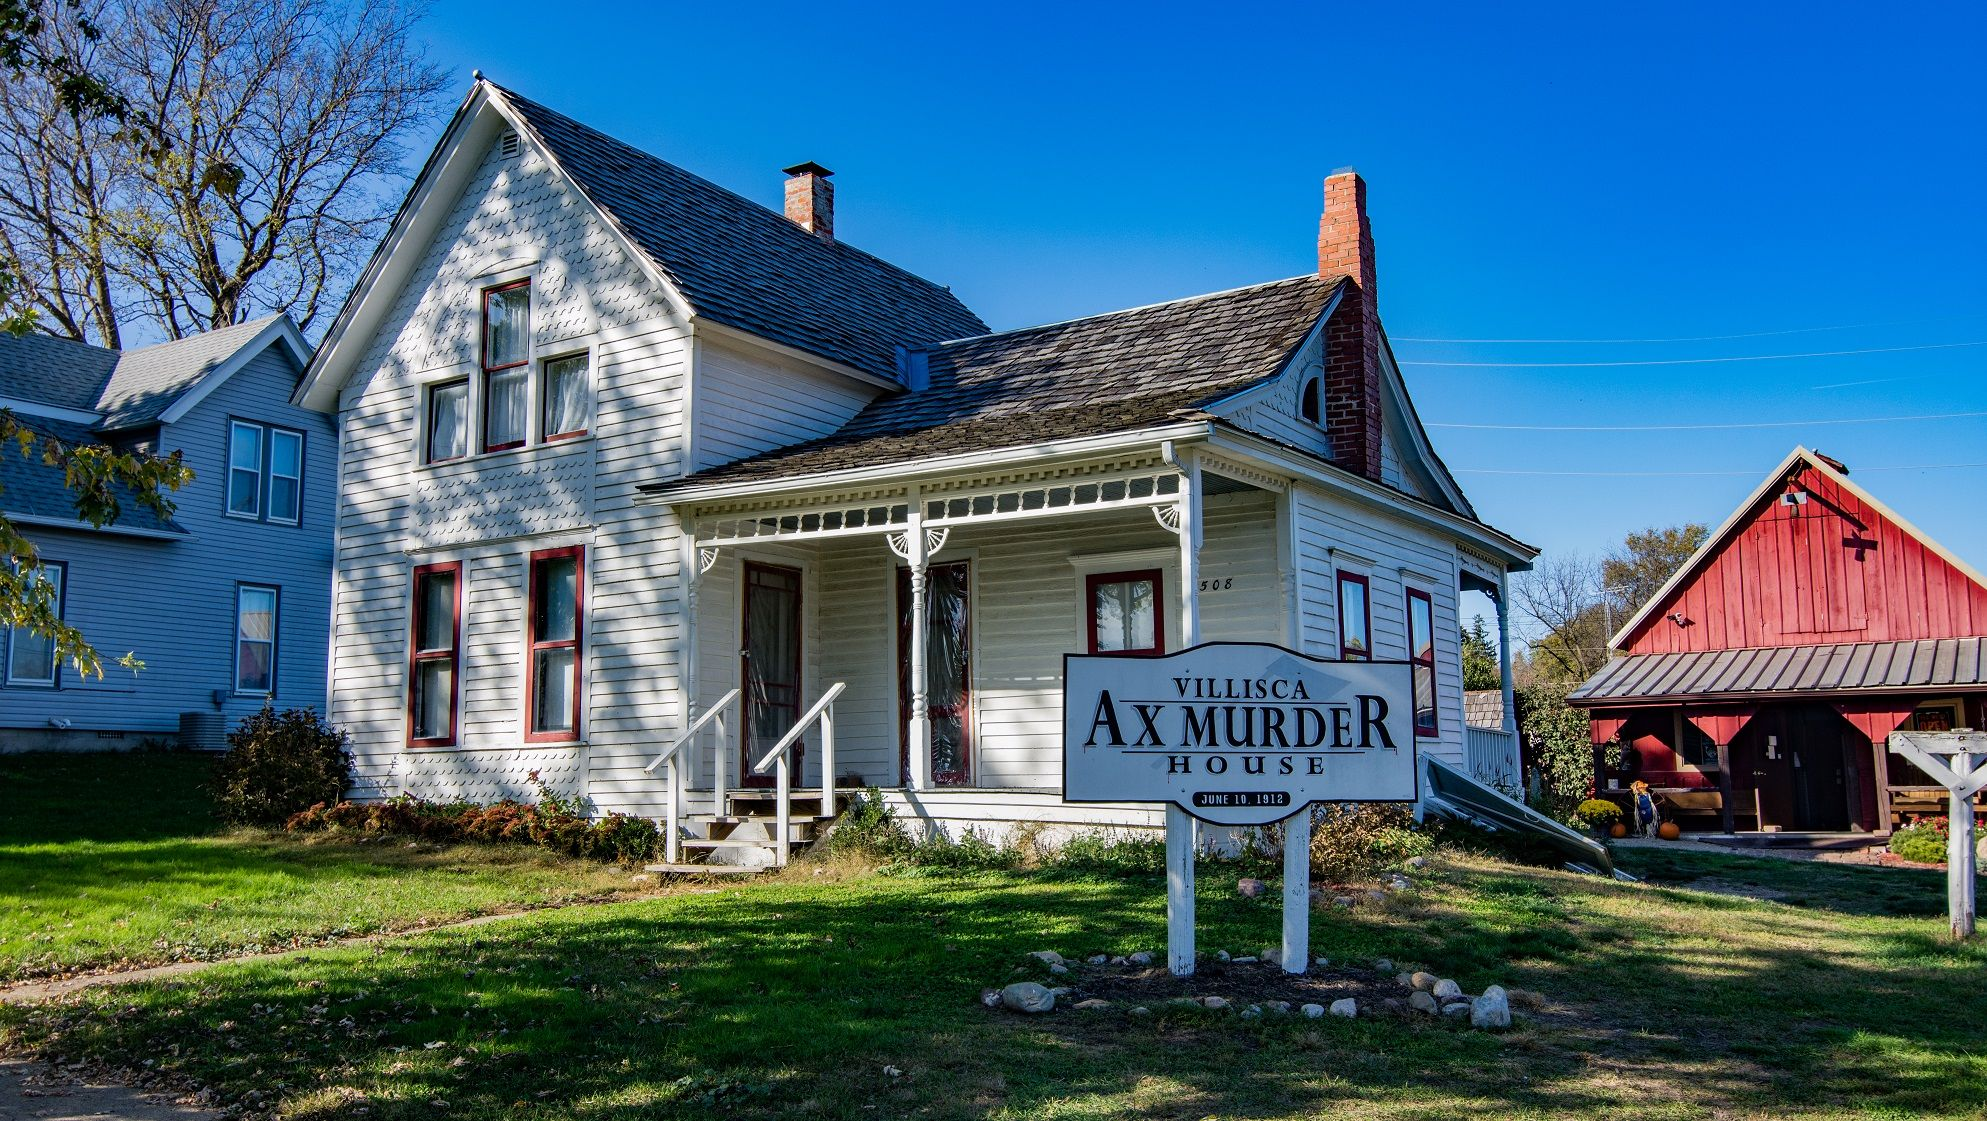 ia-villisca-axe-murder-house-00-haunted-journeys